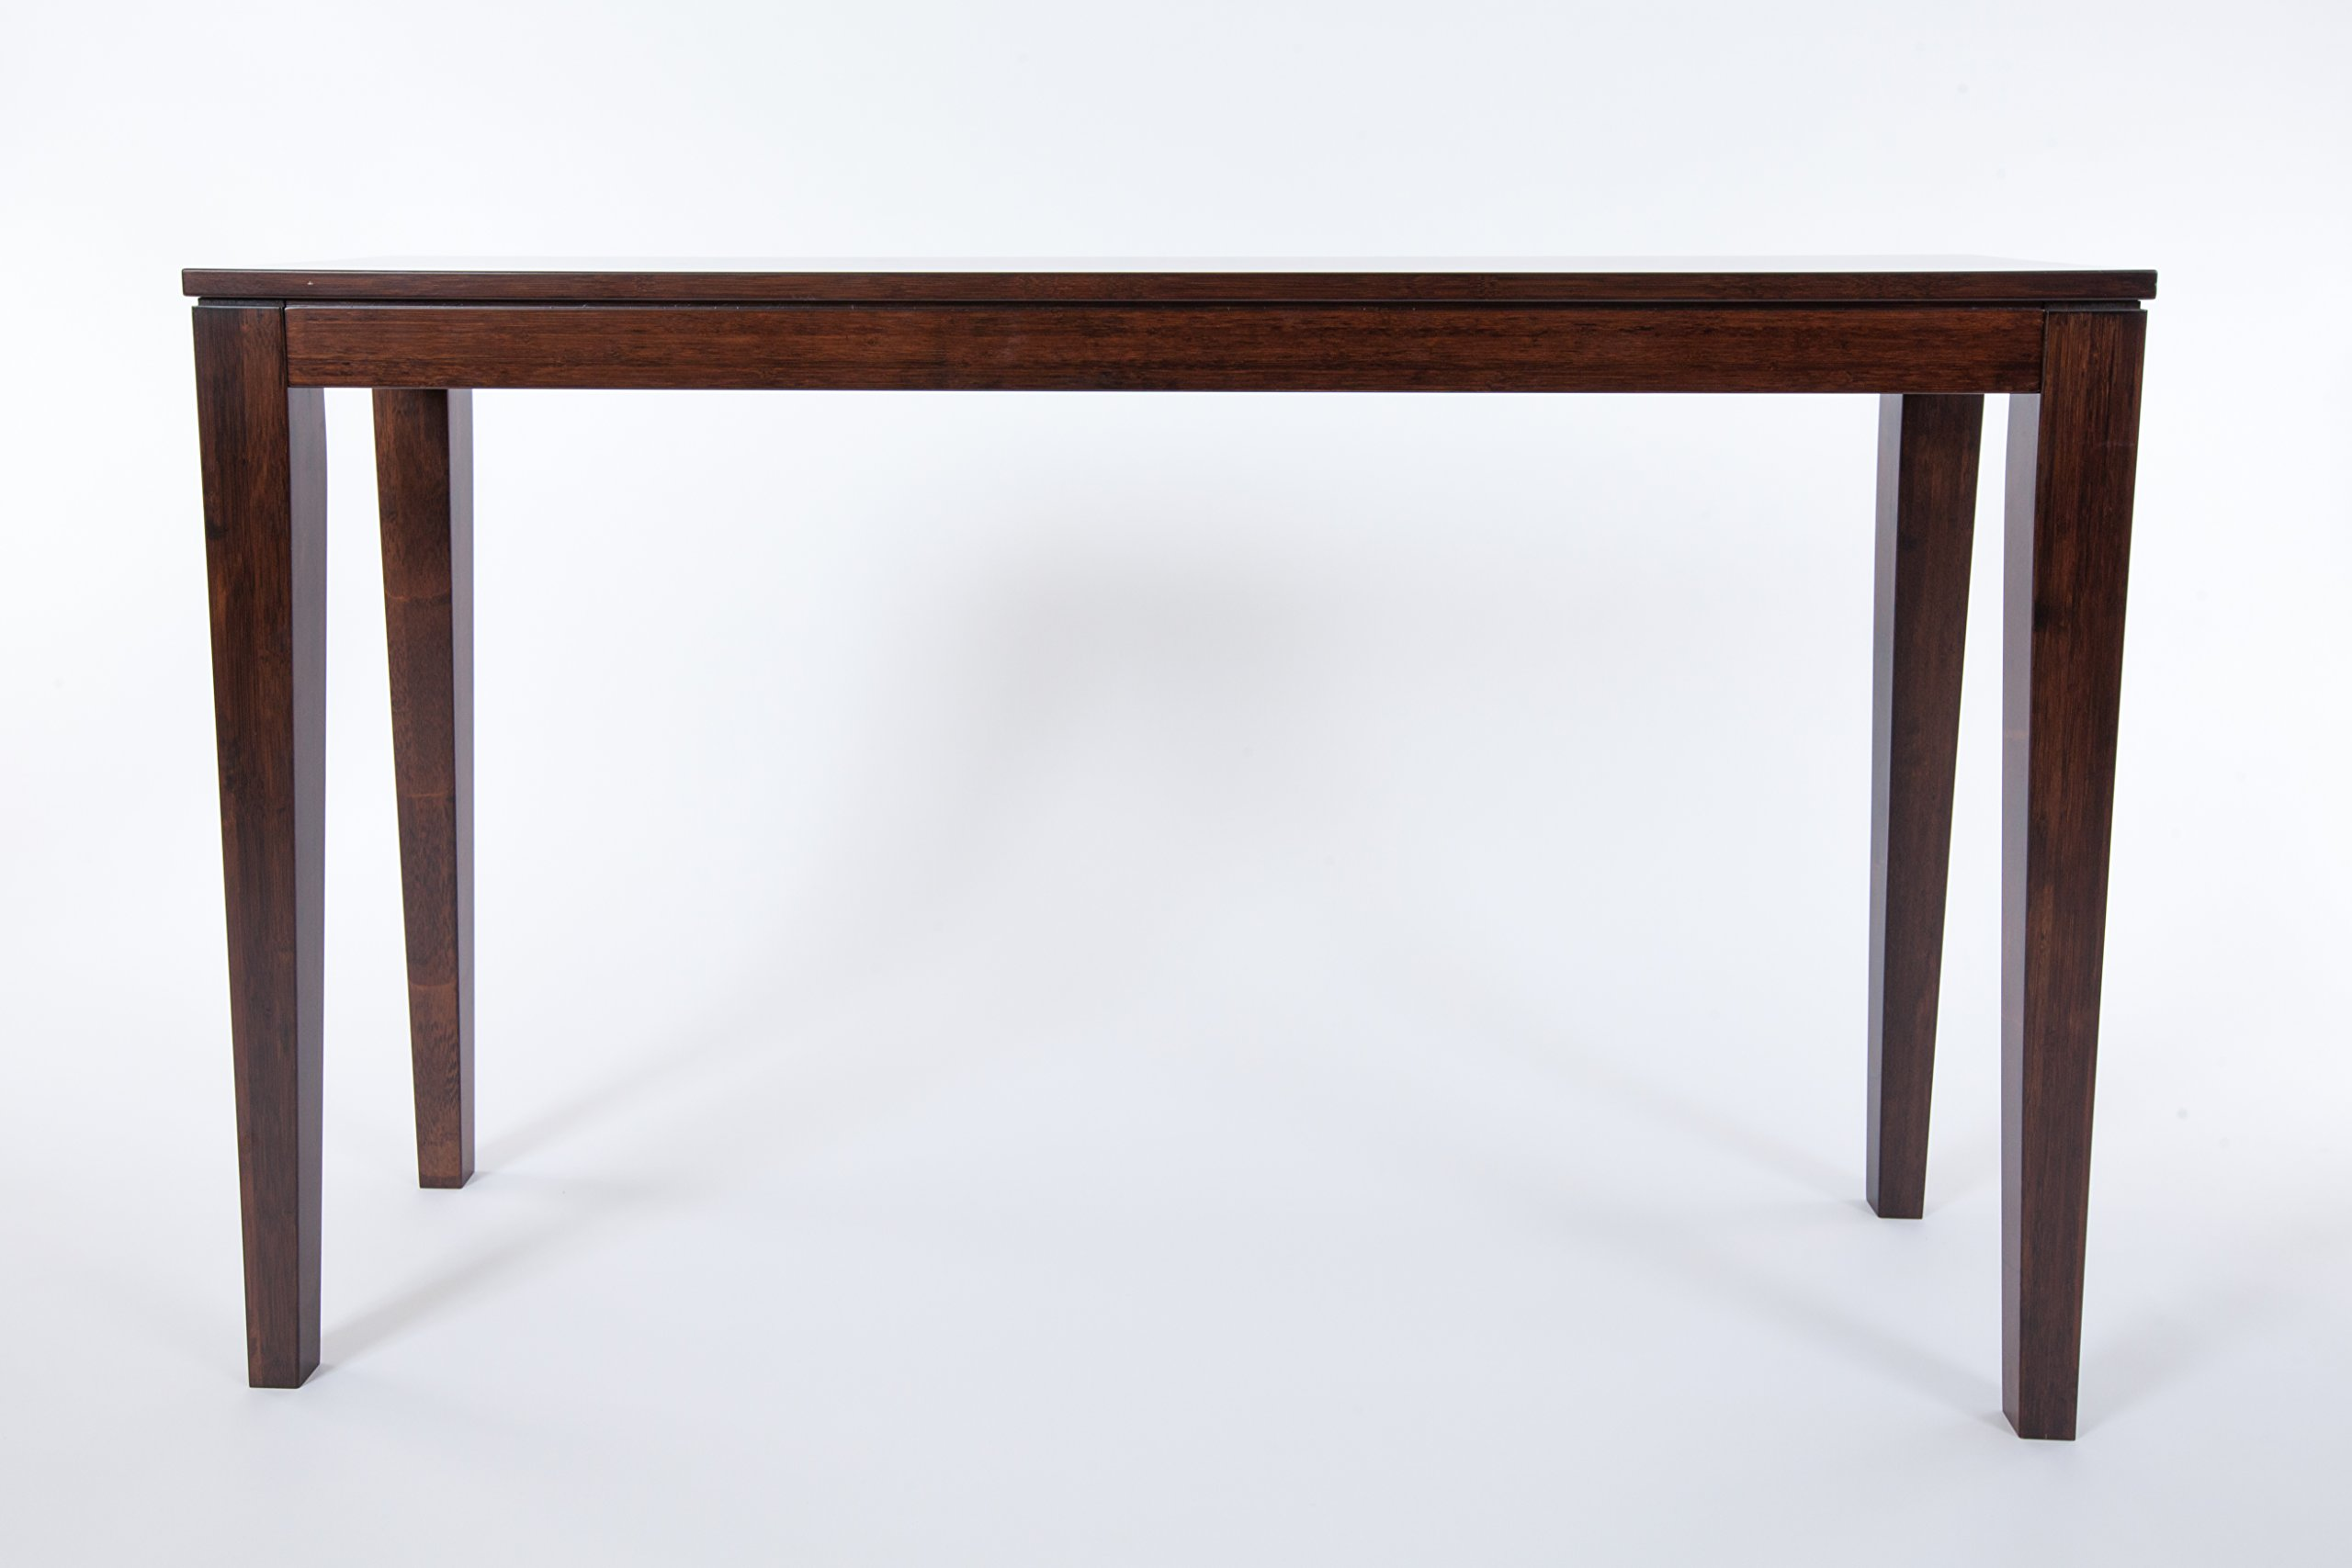 Bamboogle Interiors 10-1448J Brazil Collection Modern Bamboo Console Table in Rich Java Espresso Finish by Bamboogle